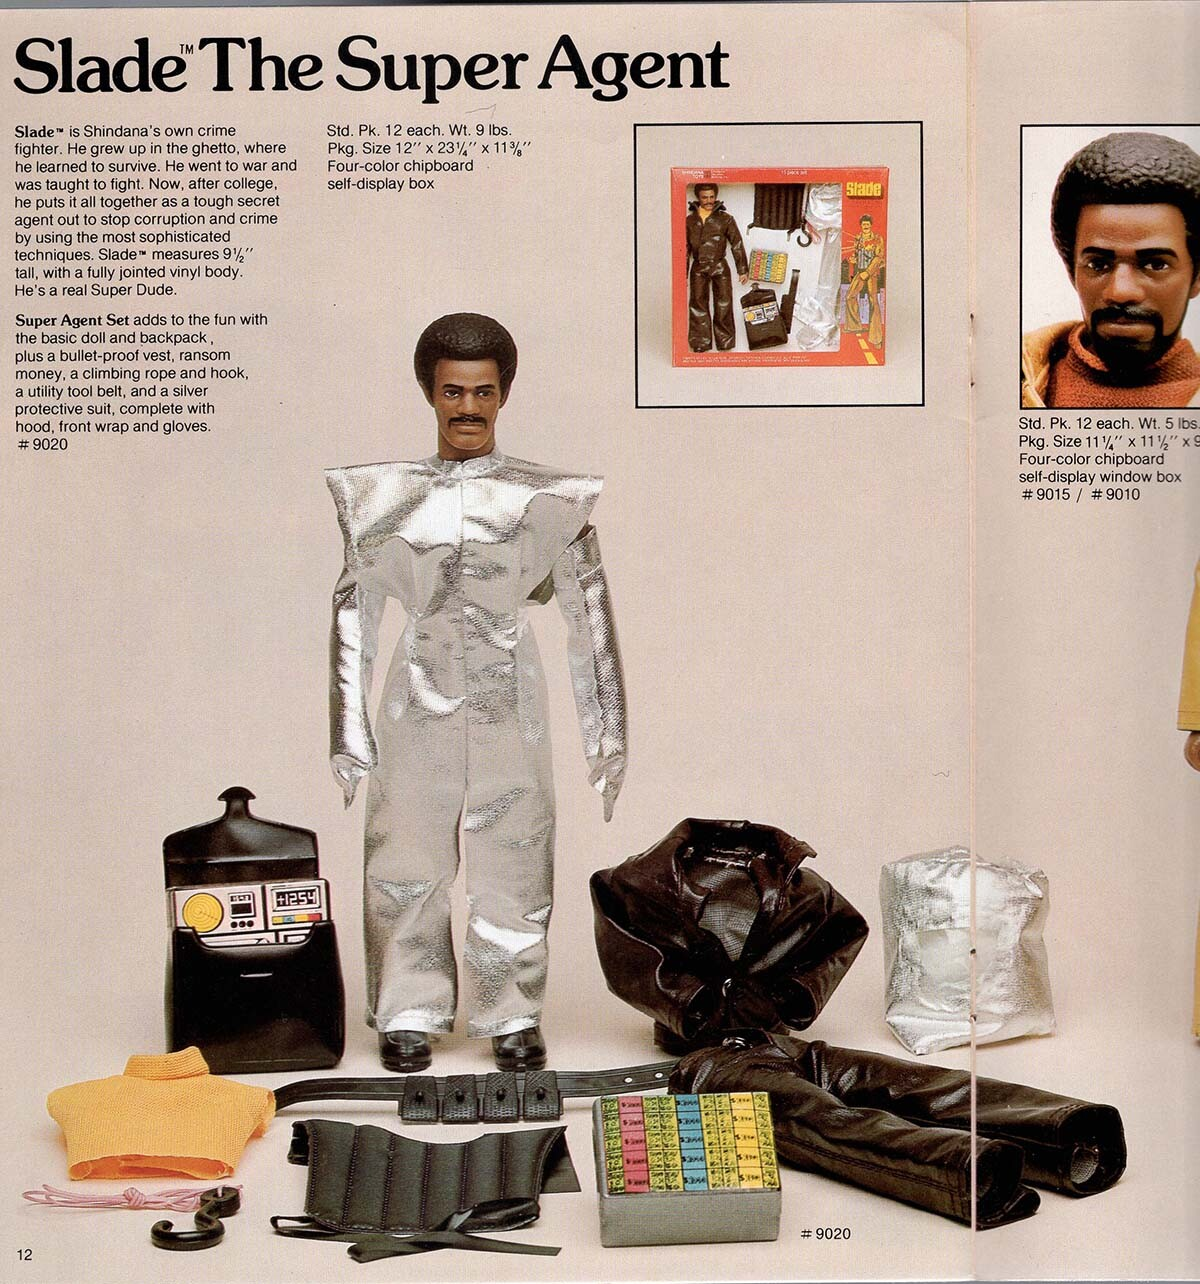 Slade the Super Agent doll